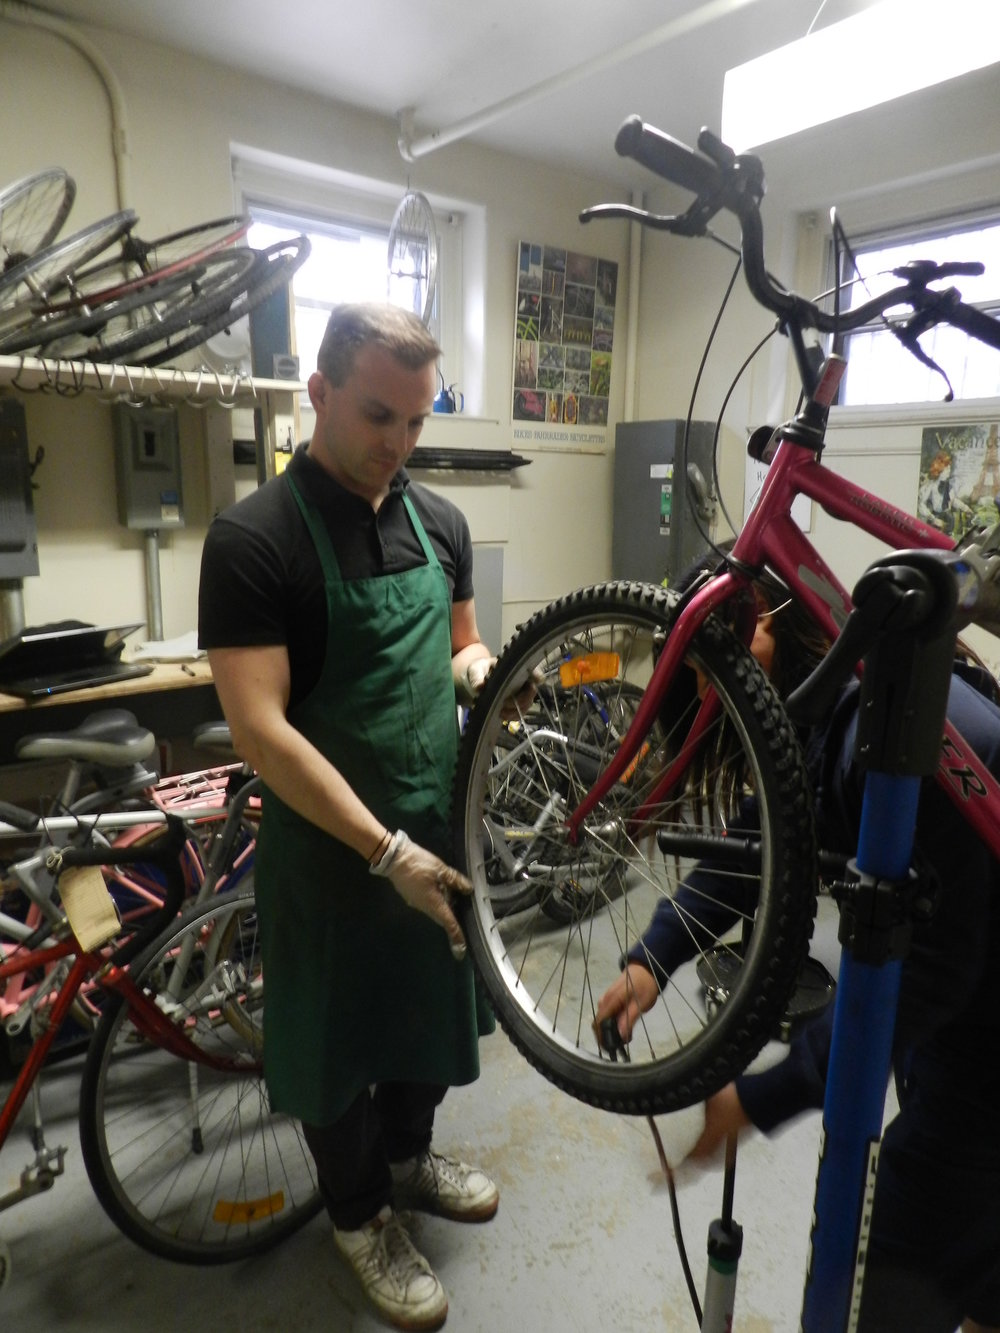 Bill's Community Bike Shop - Saint Columba House's very own bikeshop,